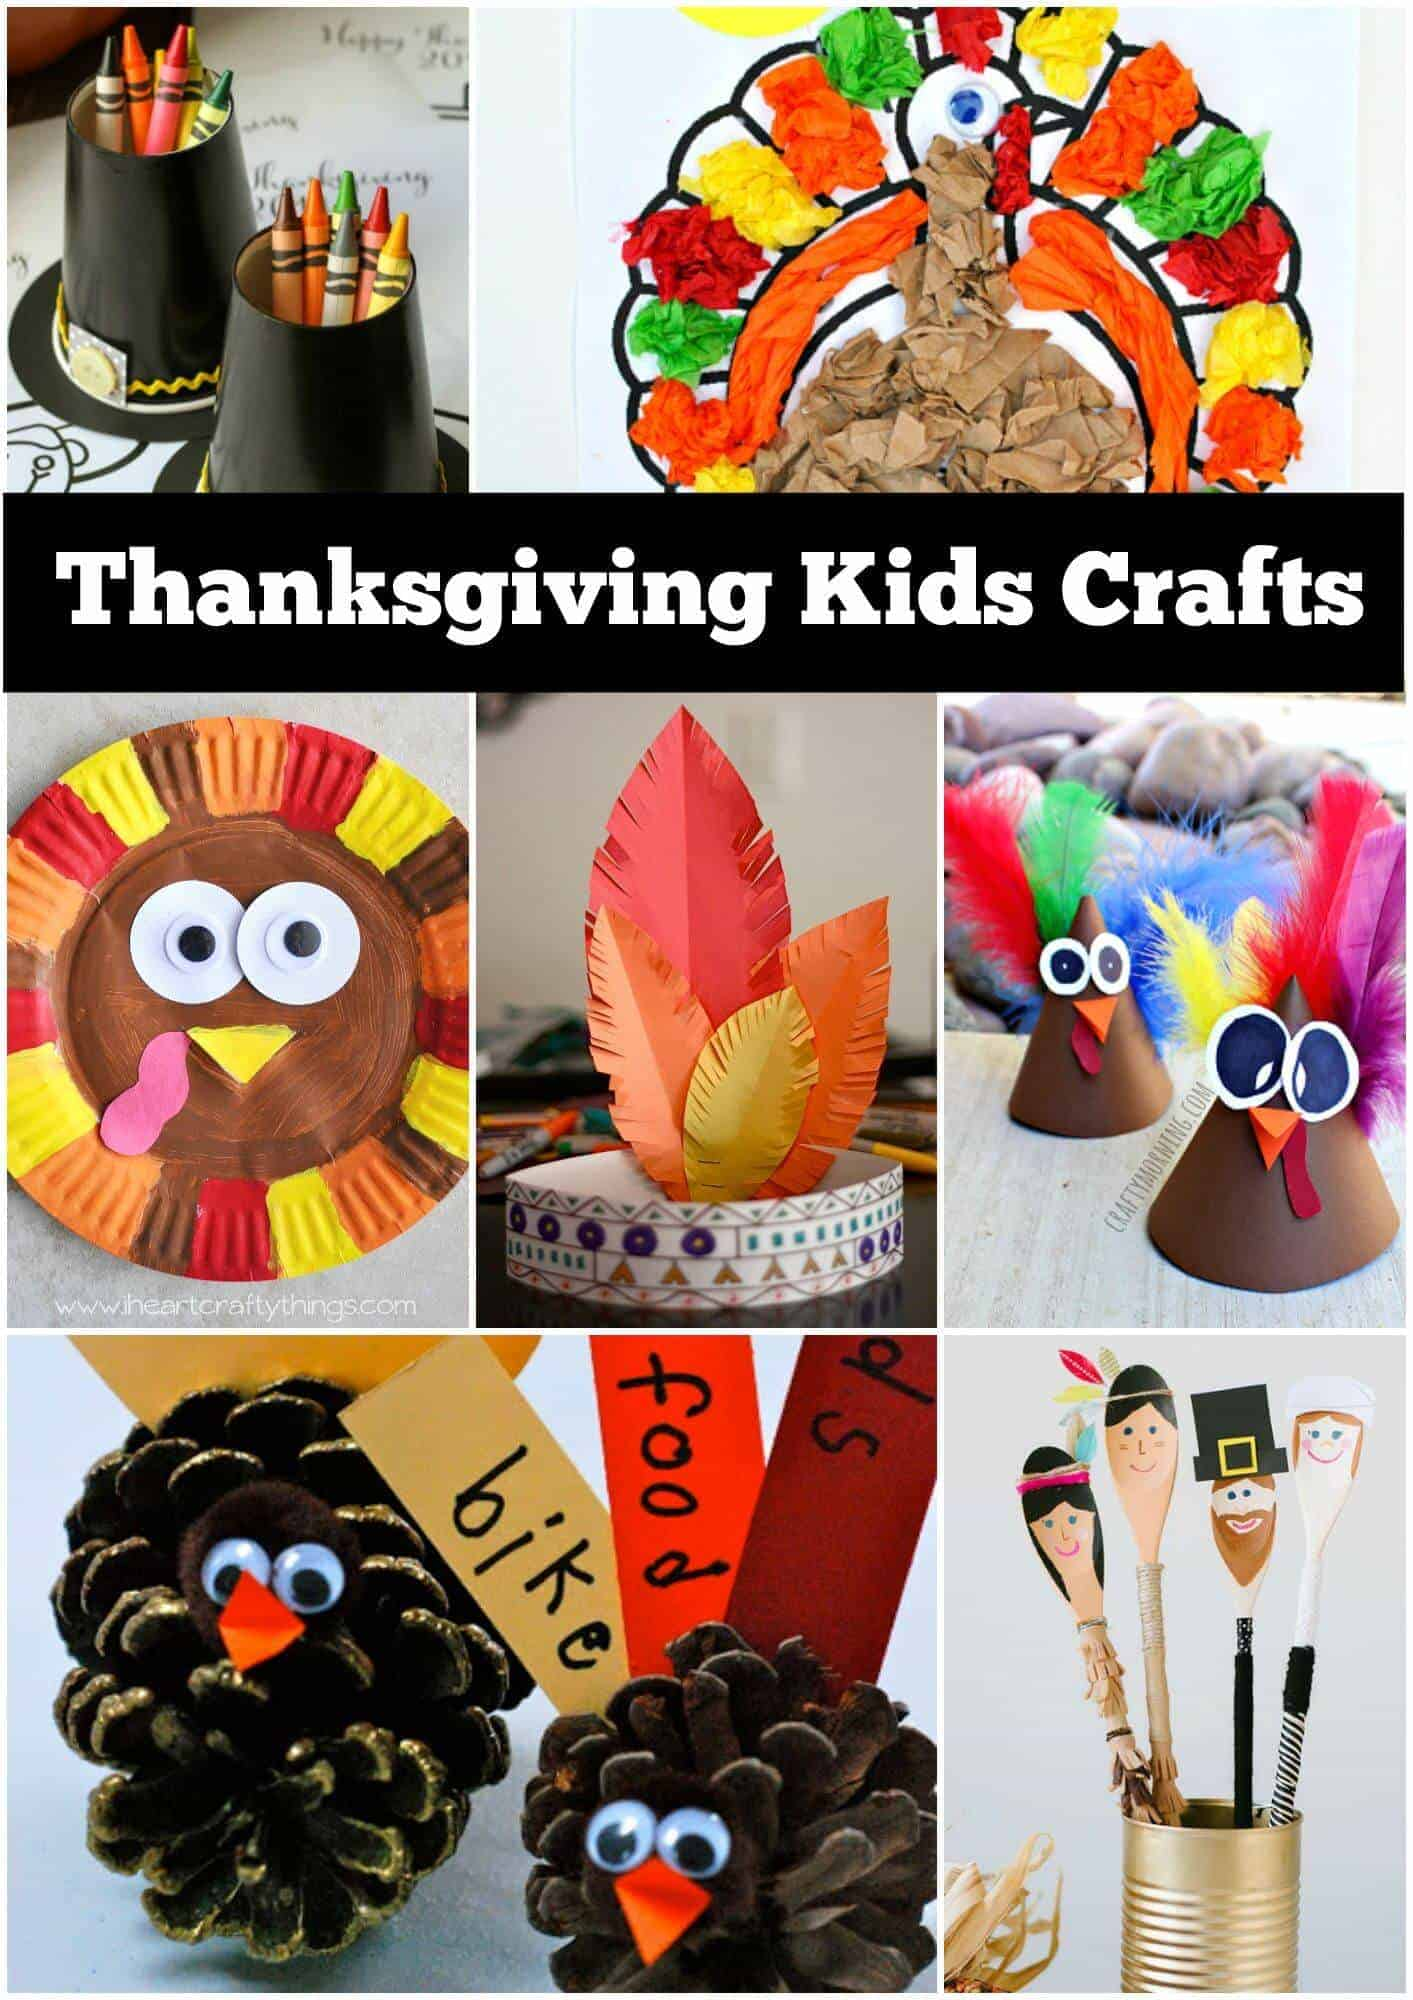 12 Thanksgiving Craft Ideas For Kids Page 2 Of 2 Princess Pinky Girl